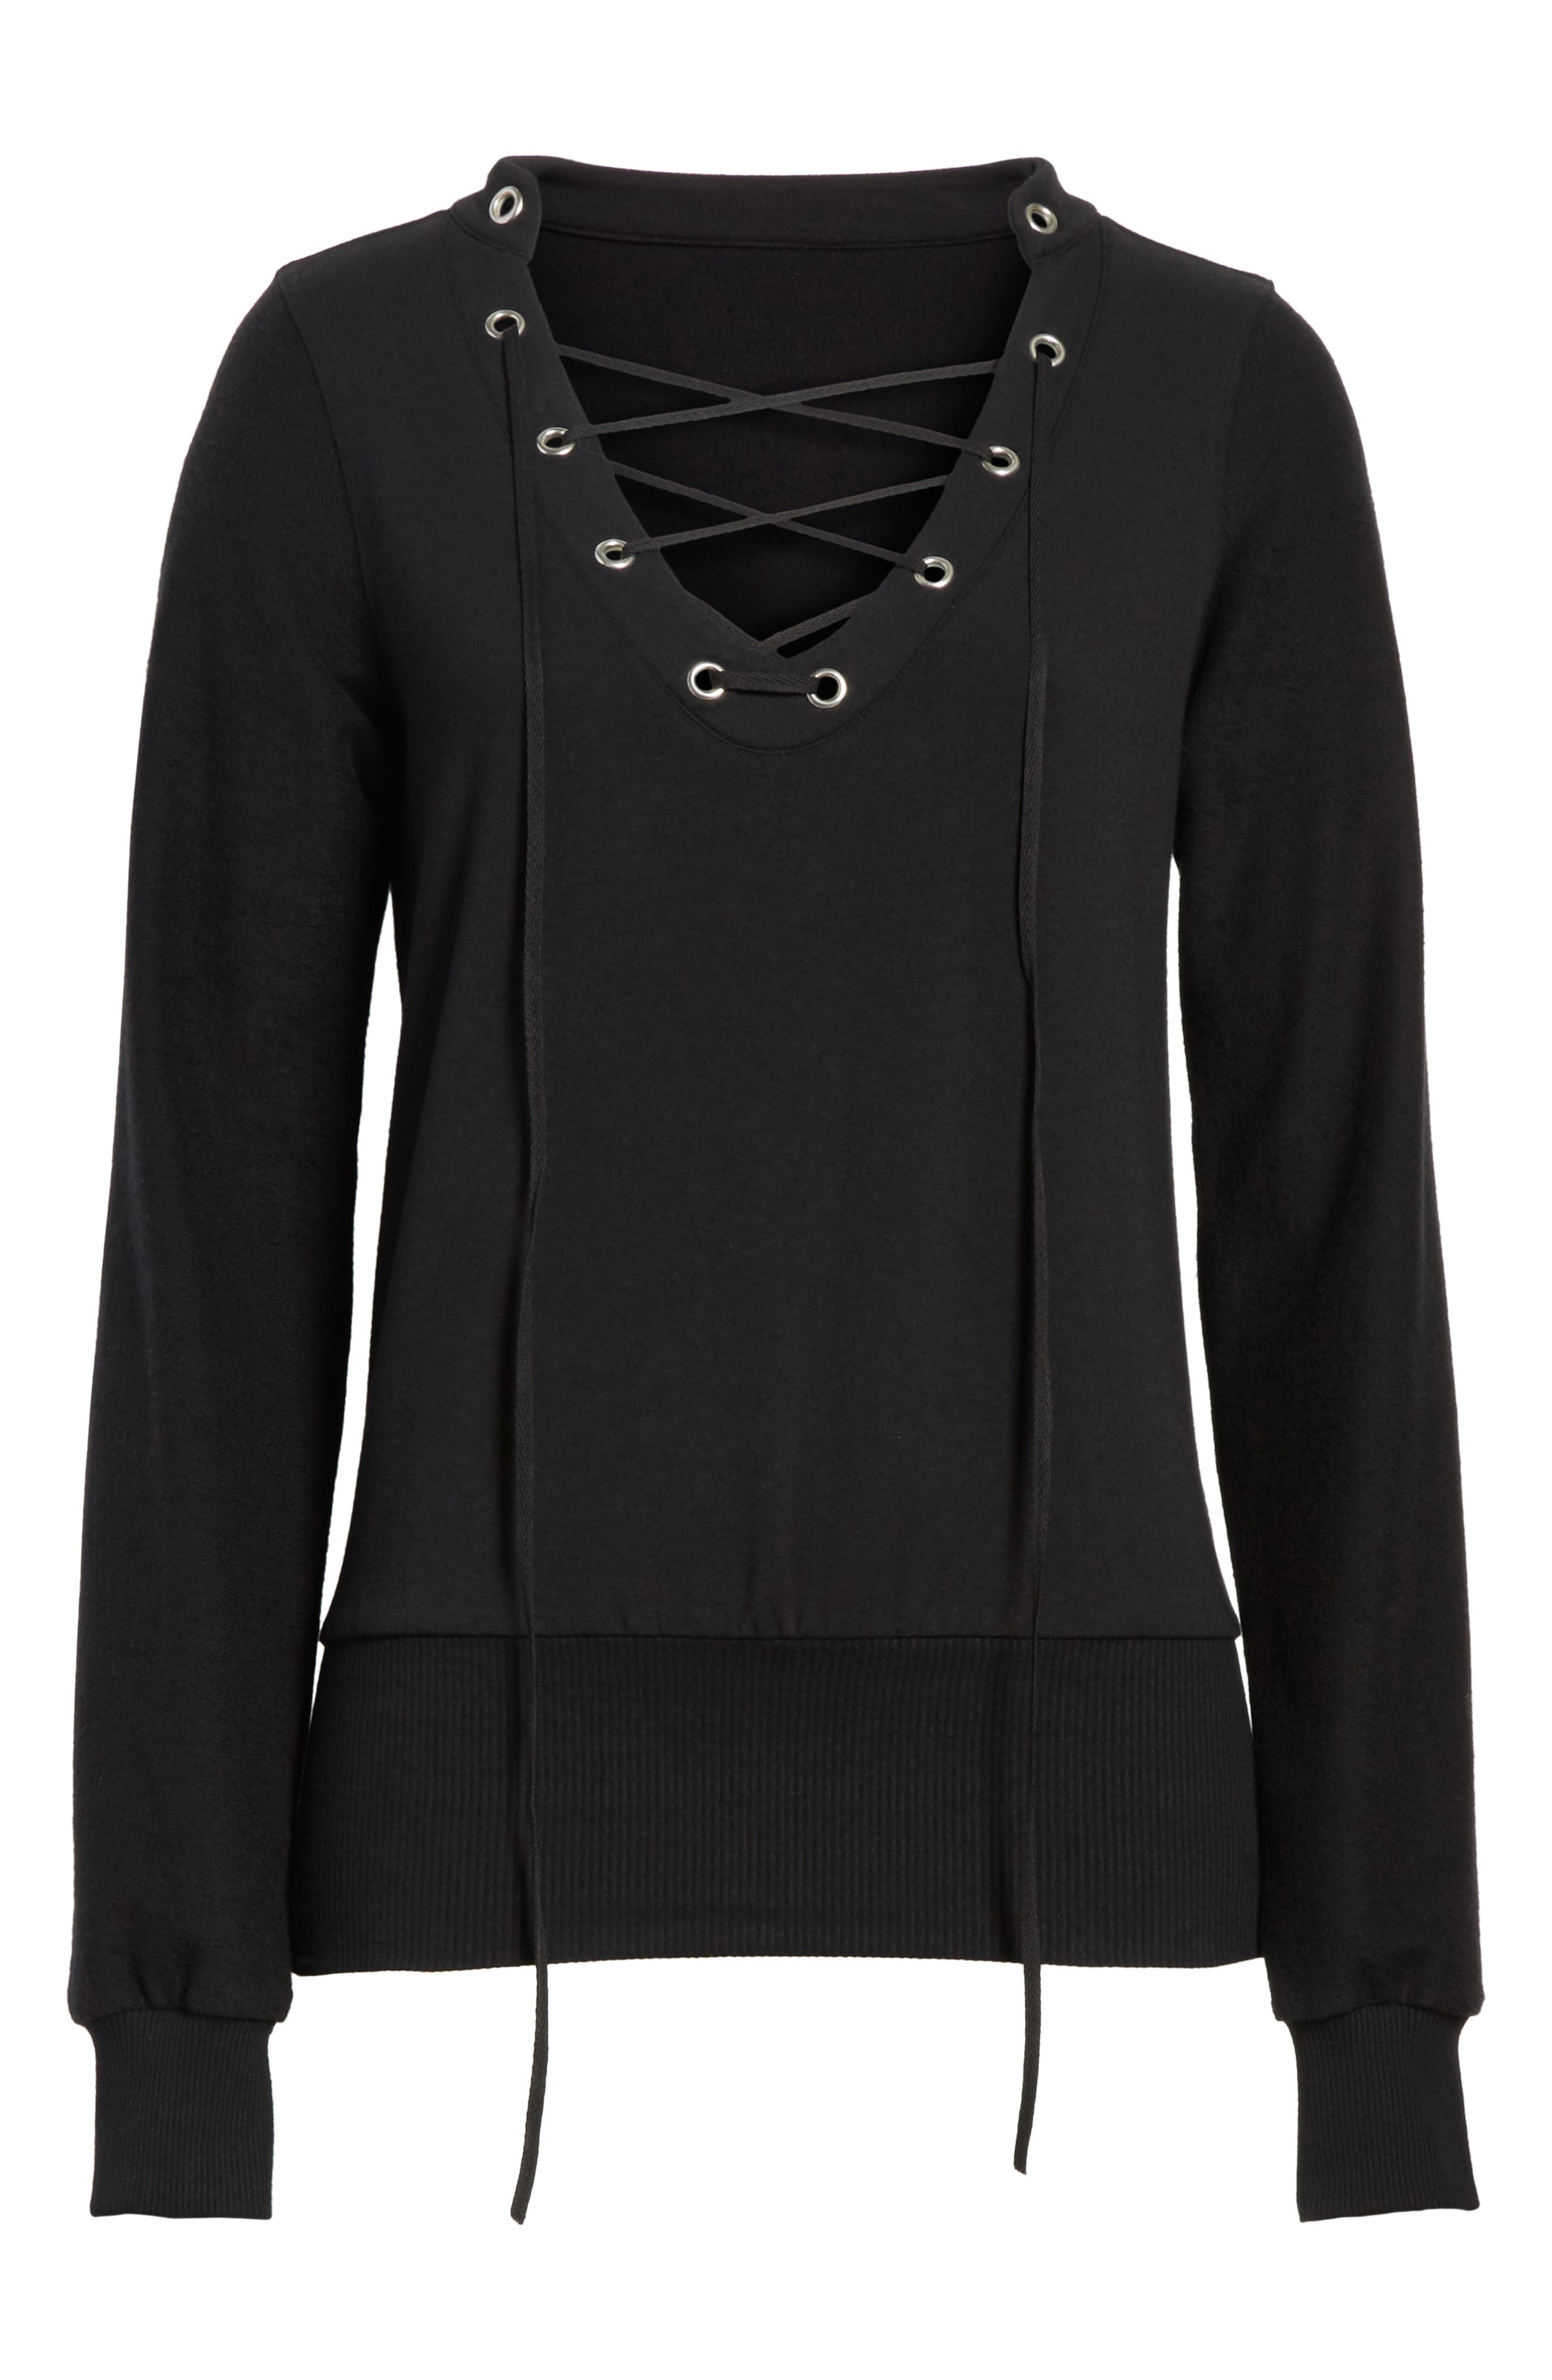 Josilyn Lace-Up Sweatshirt,                             Alternate thumbnail 6, color,                             001